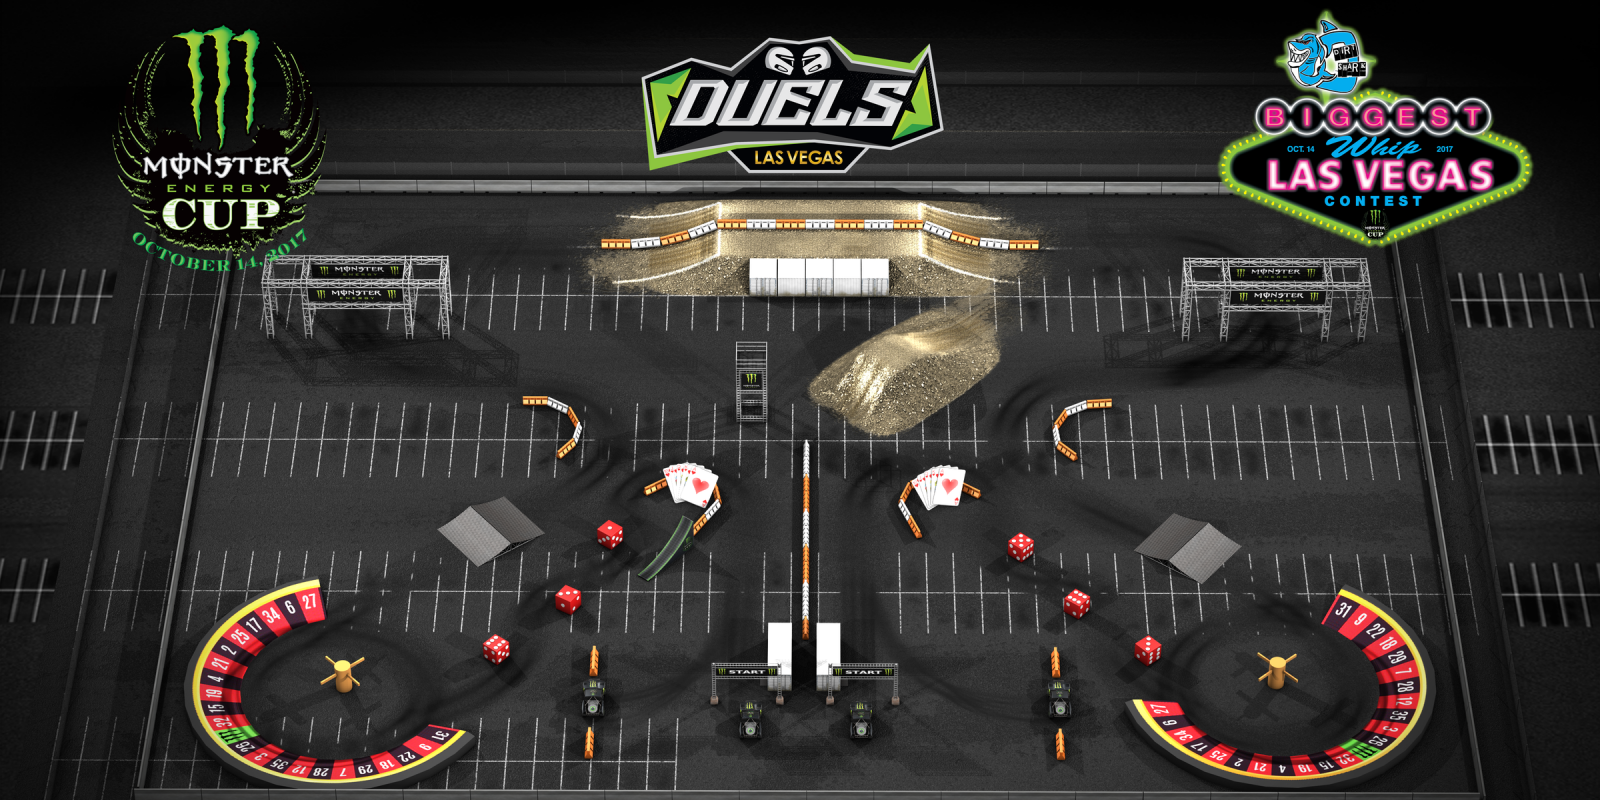 2017 Web Duels Track Map and trophy images